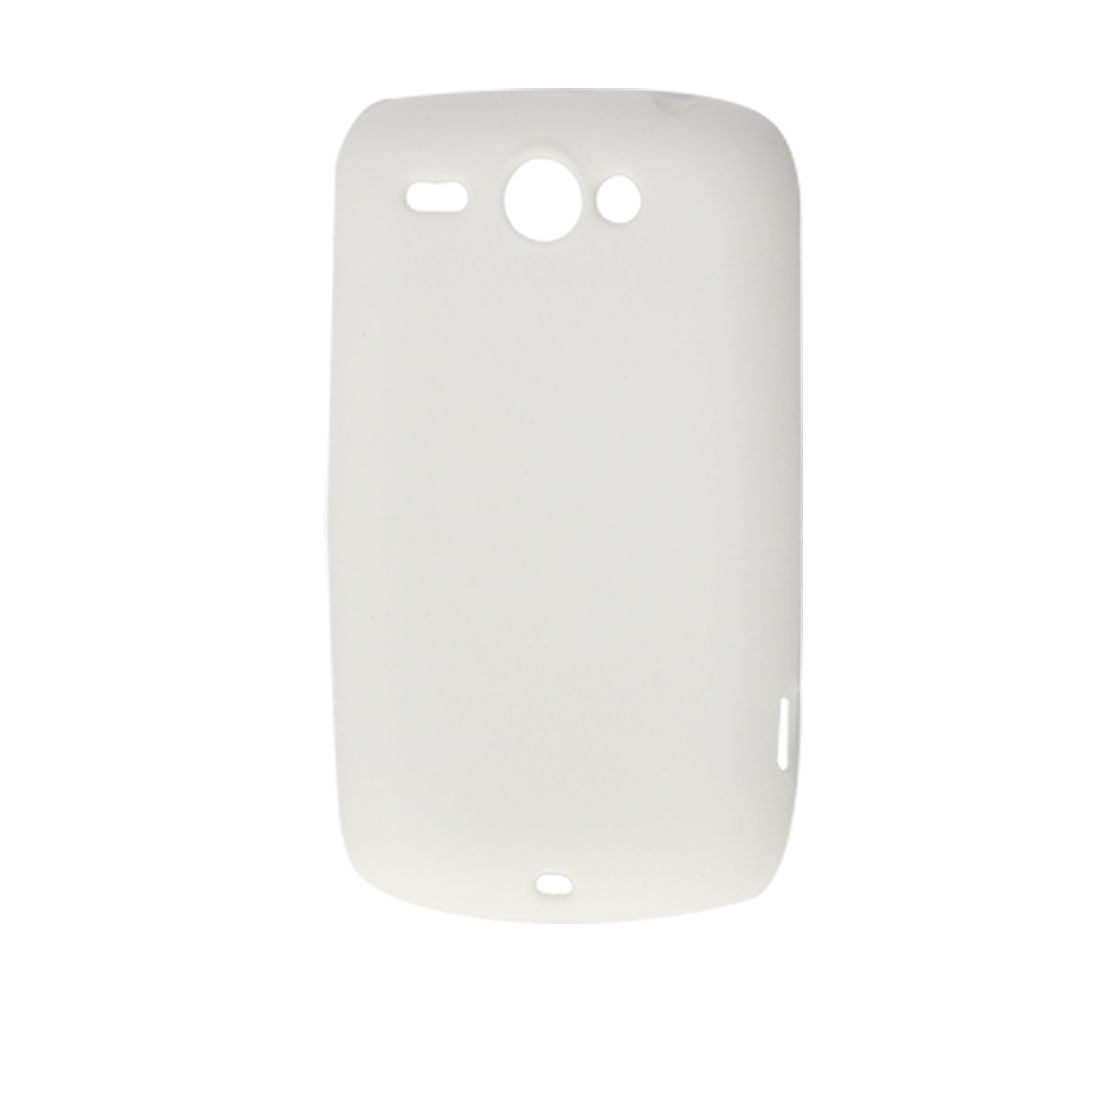 Protective Soft Silicone Skin White Cover for HTC Wildfire G8